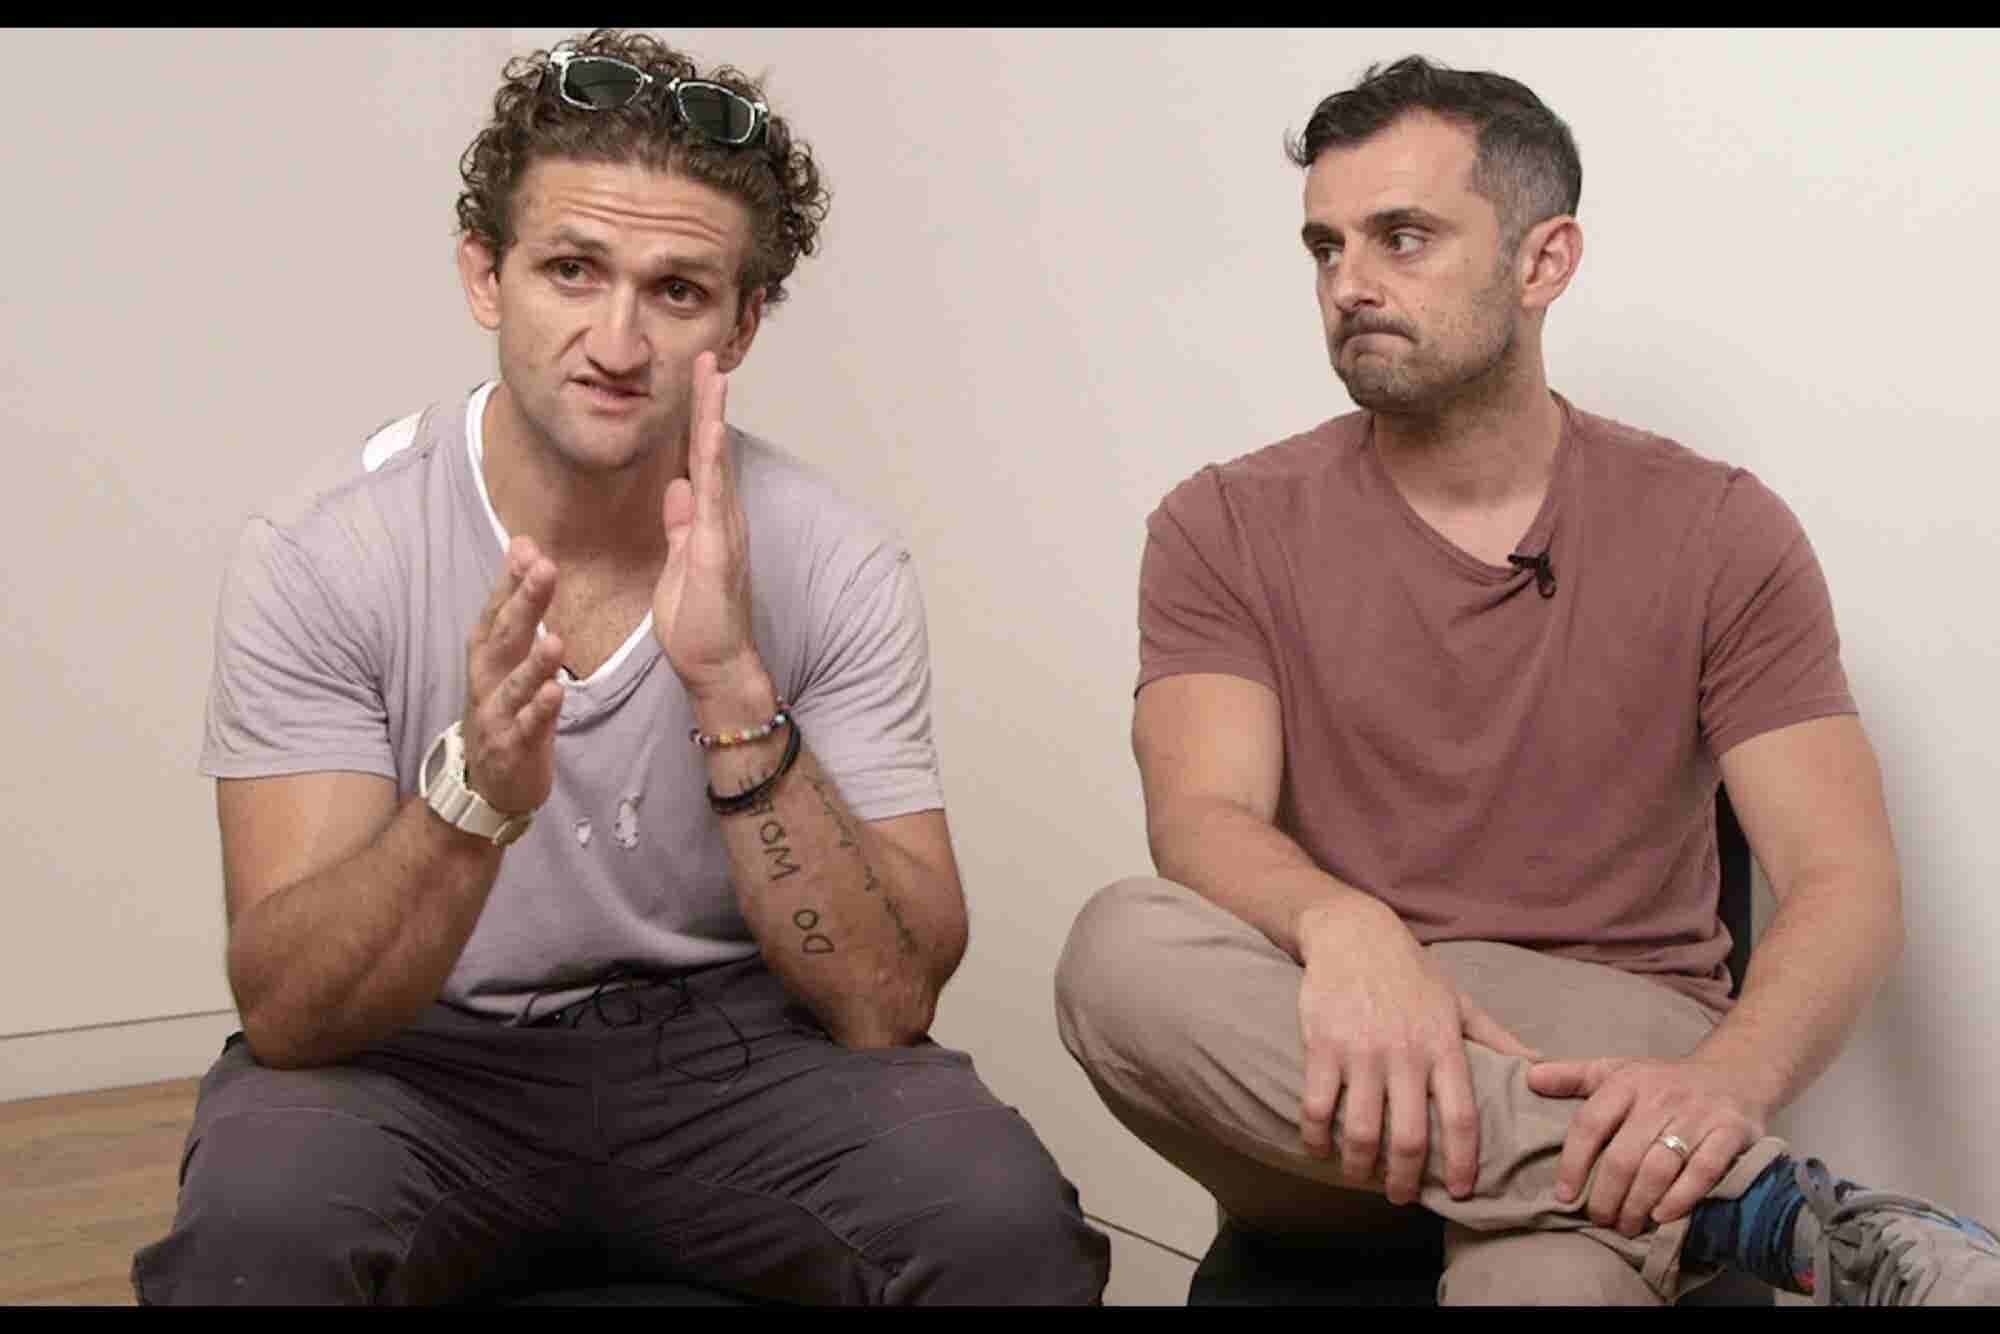 Gary Vaynerchuk and Casey Neistat Use These Skills the Most